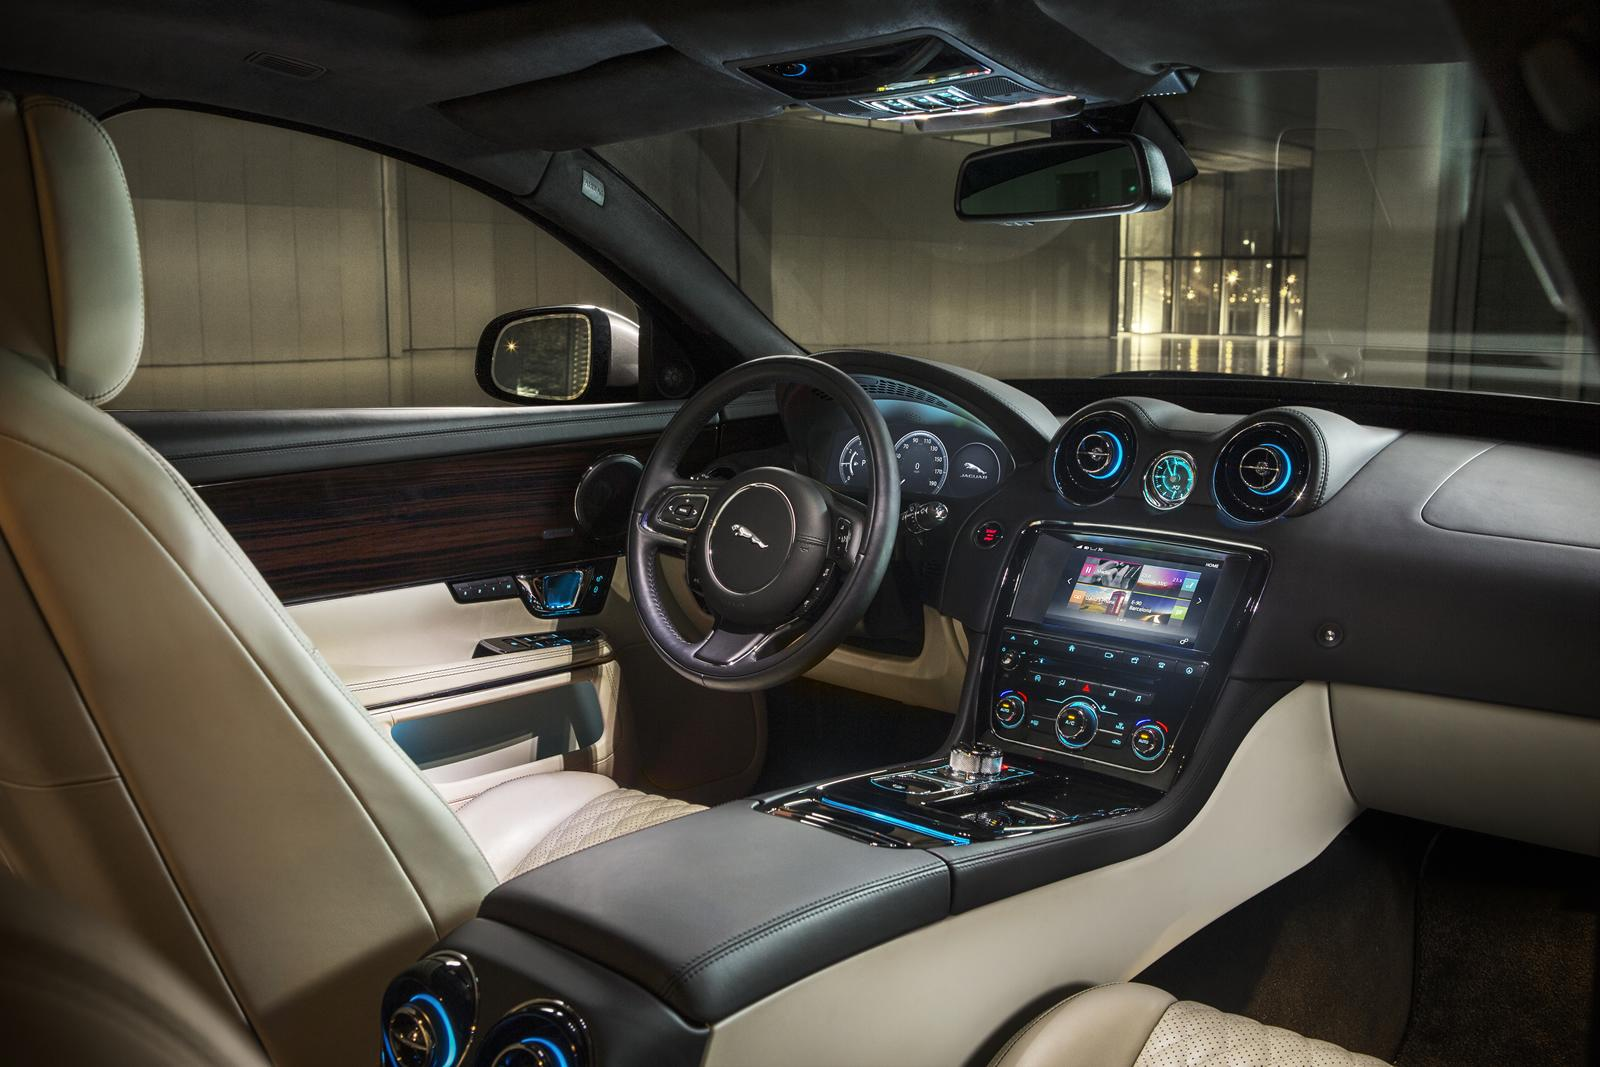 Jaguar XJ 2016 interior dashboard / интерьер центральная панель